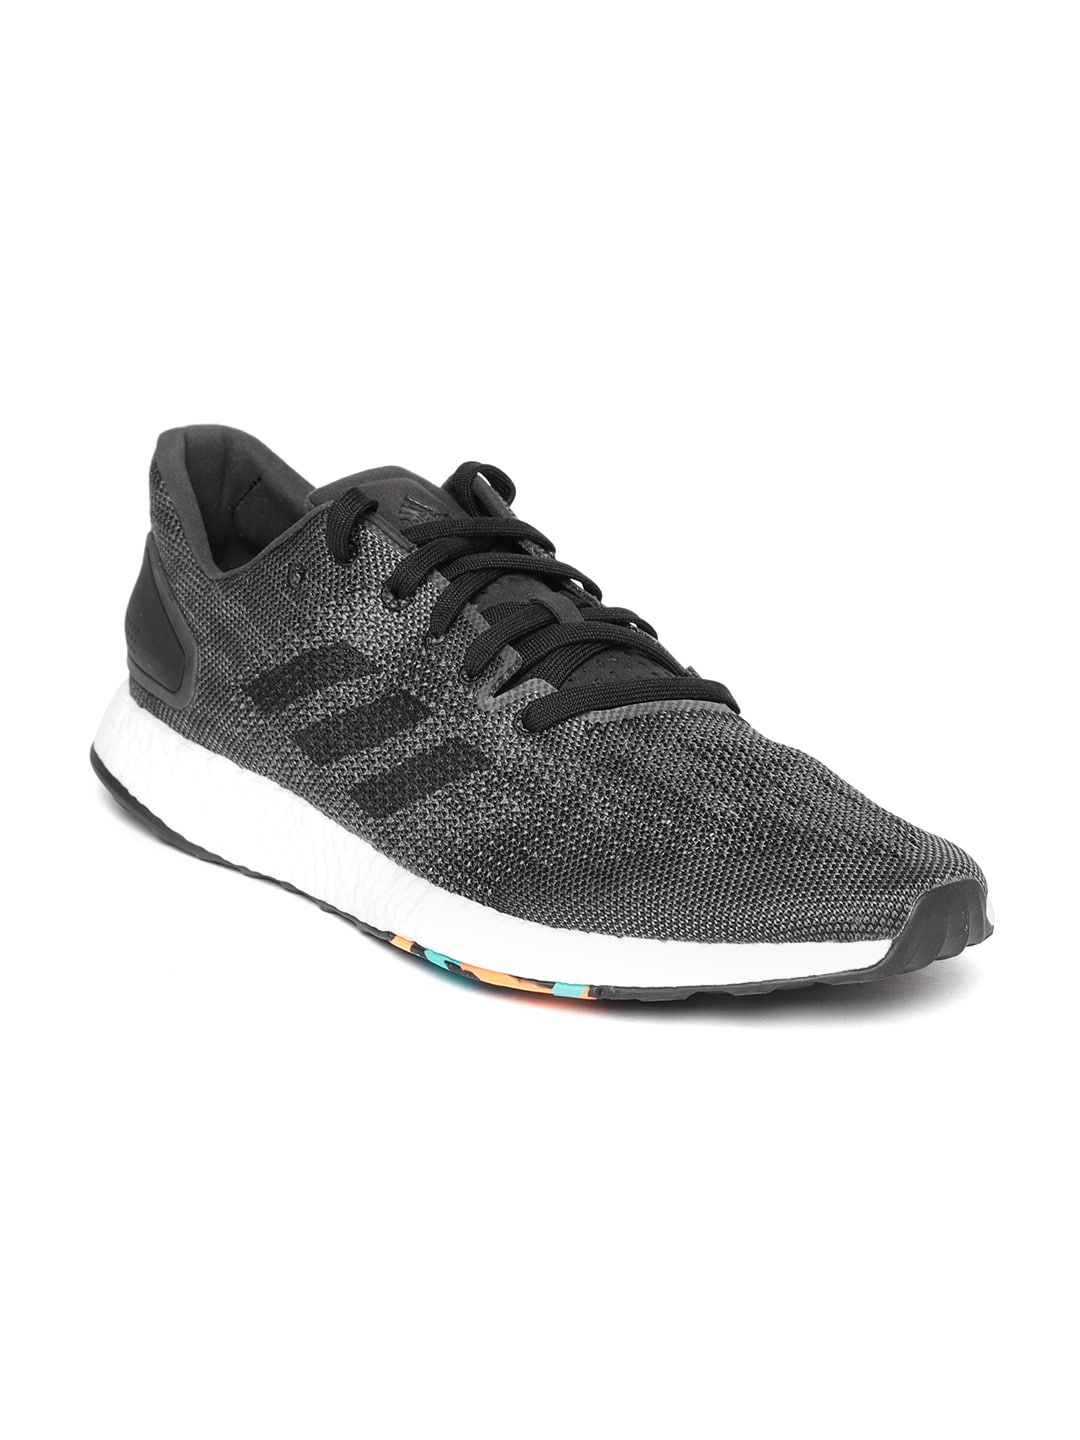 check out 93e3f 5eb36 ... italy adidas sports shoes buy addidas sports shoes online myntra 5a13a  3829c